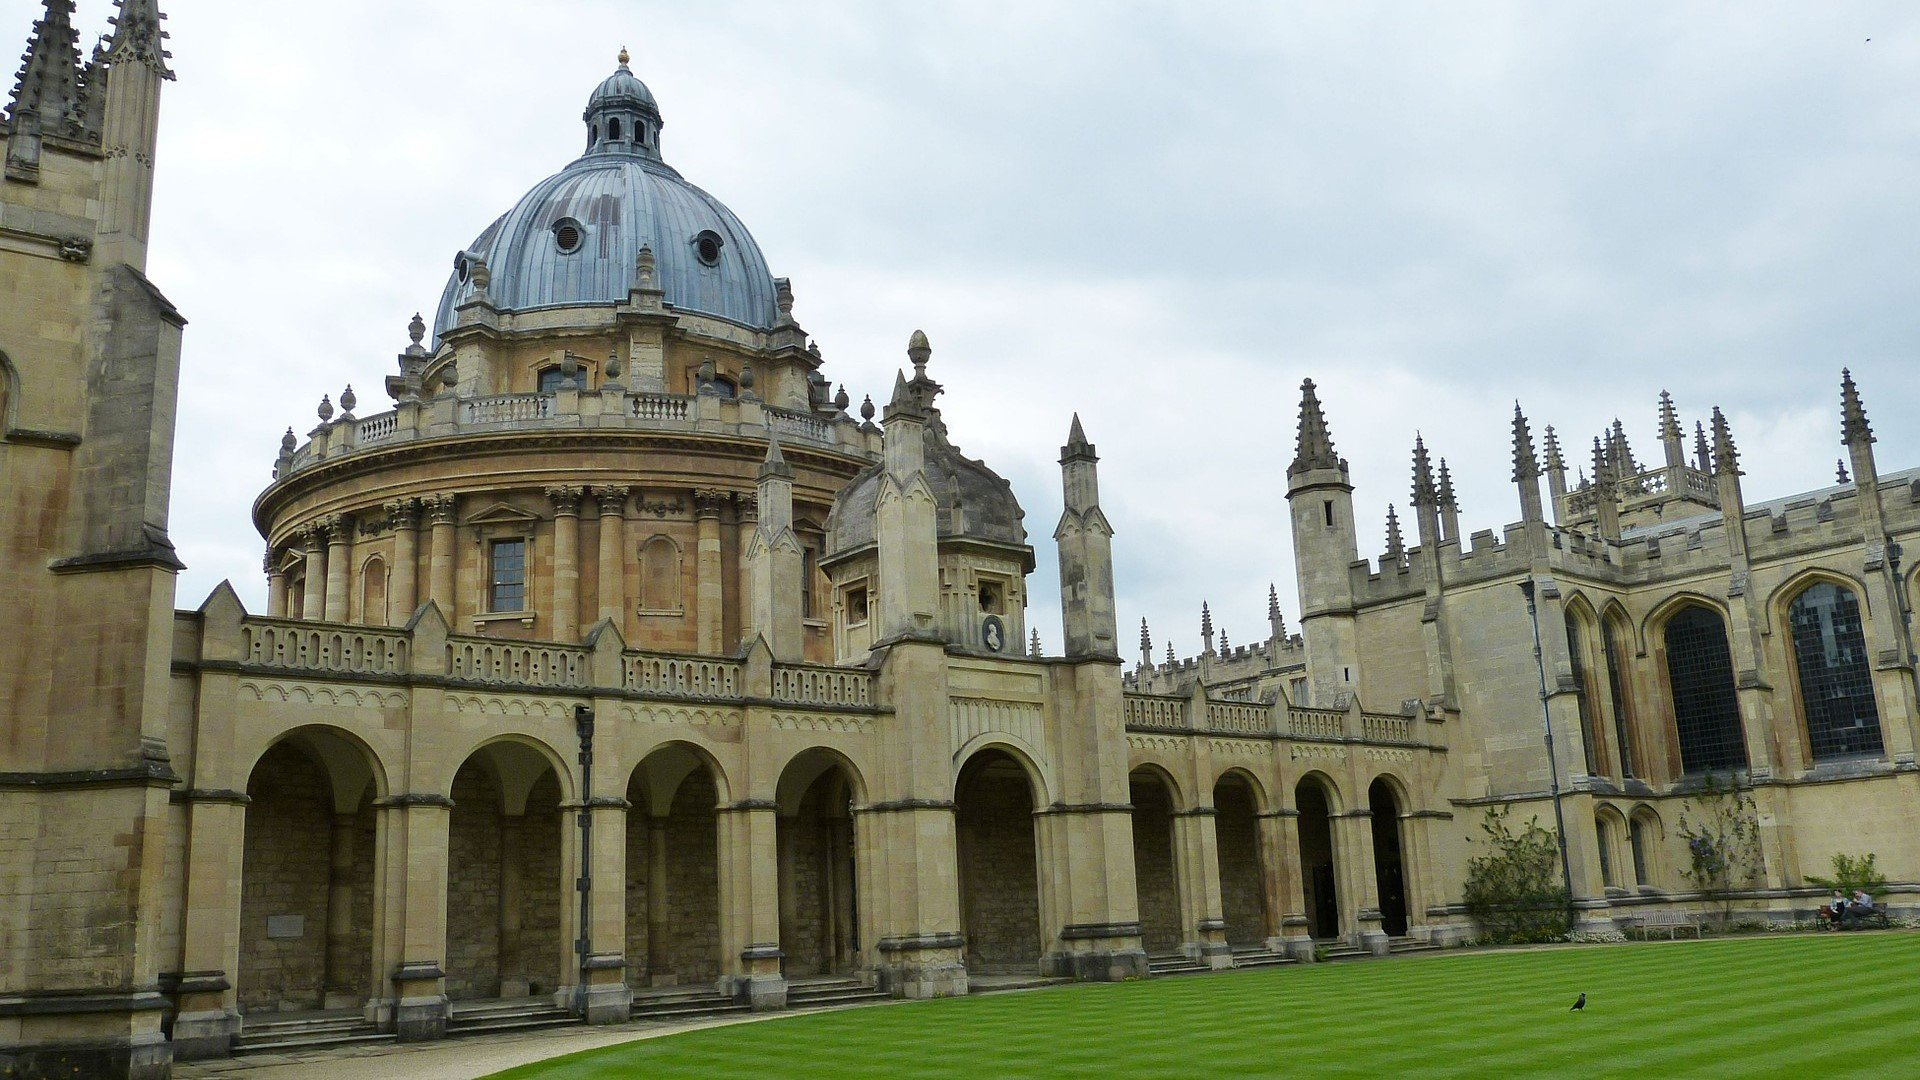 More Black British students than ever starting at Oxford. Image: Oxford University's Radcliffe Camera